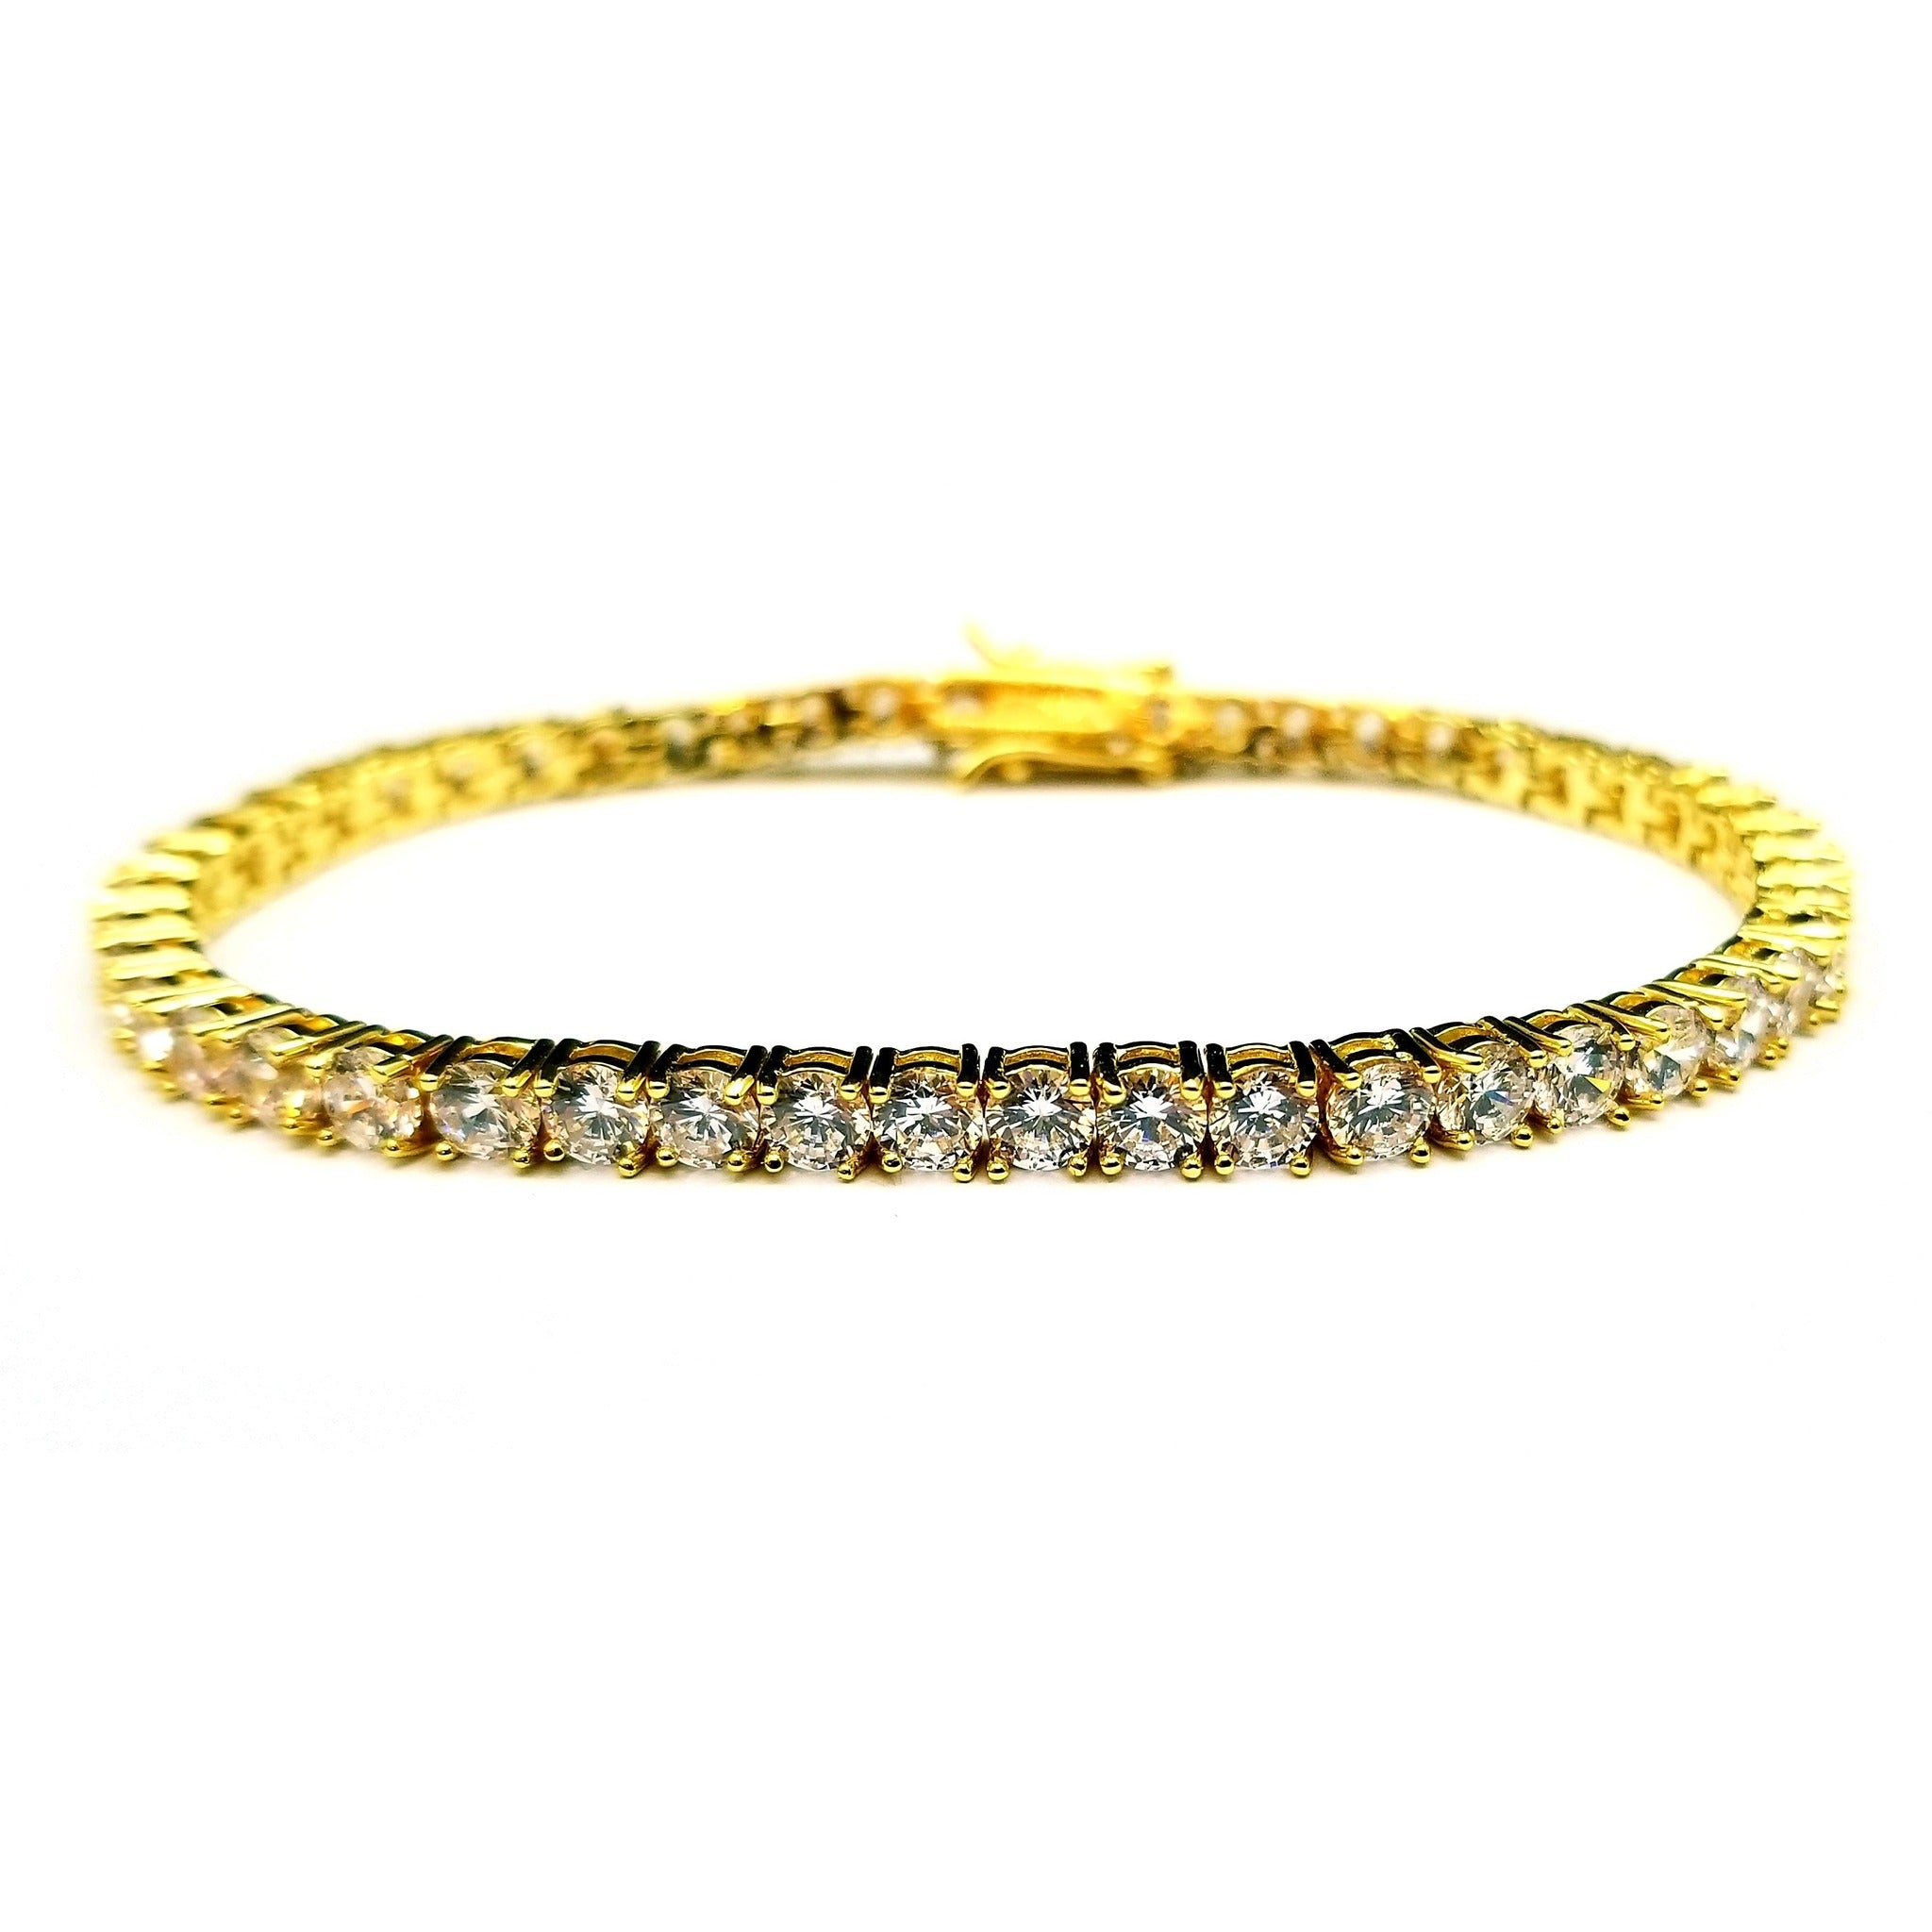 from gold yellow bracelet diamond accented k com bangle edge therealreal bangles pav with pin description